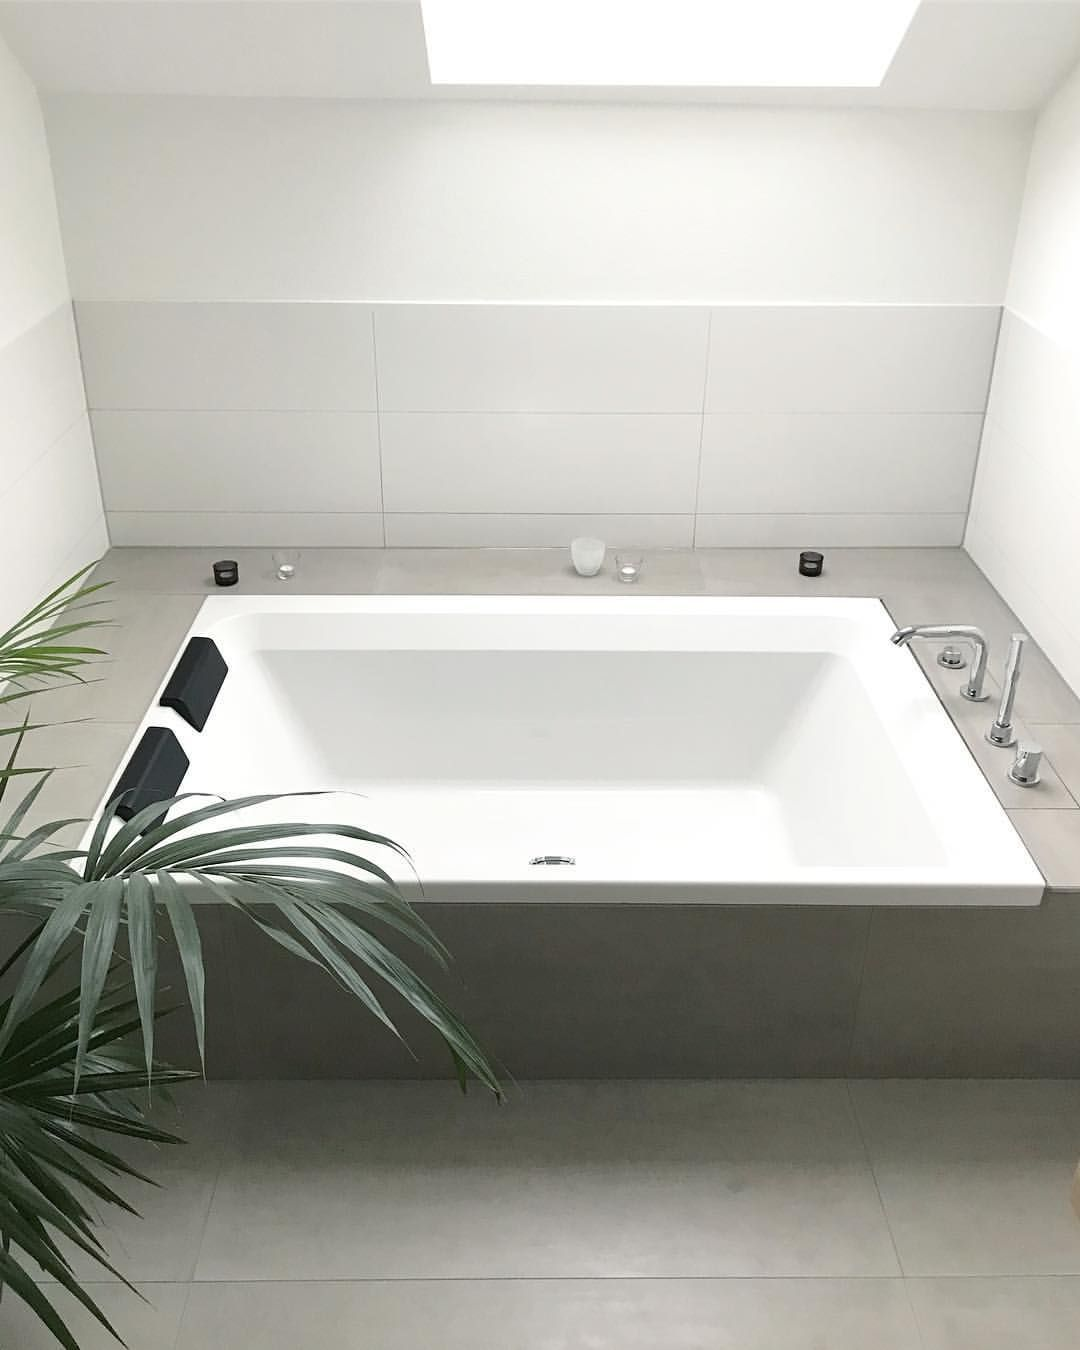 Xxl Doppelwanne Badewanne F Atilde Frac14 R Zwei Bathroom In 2019 Big Baths Big Baths Bath Tub For Two Big Bathtub